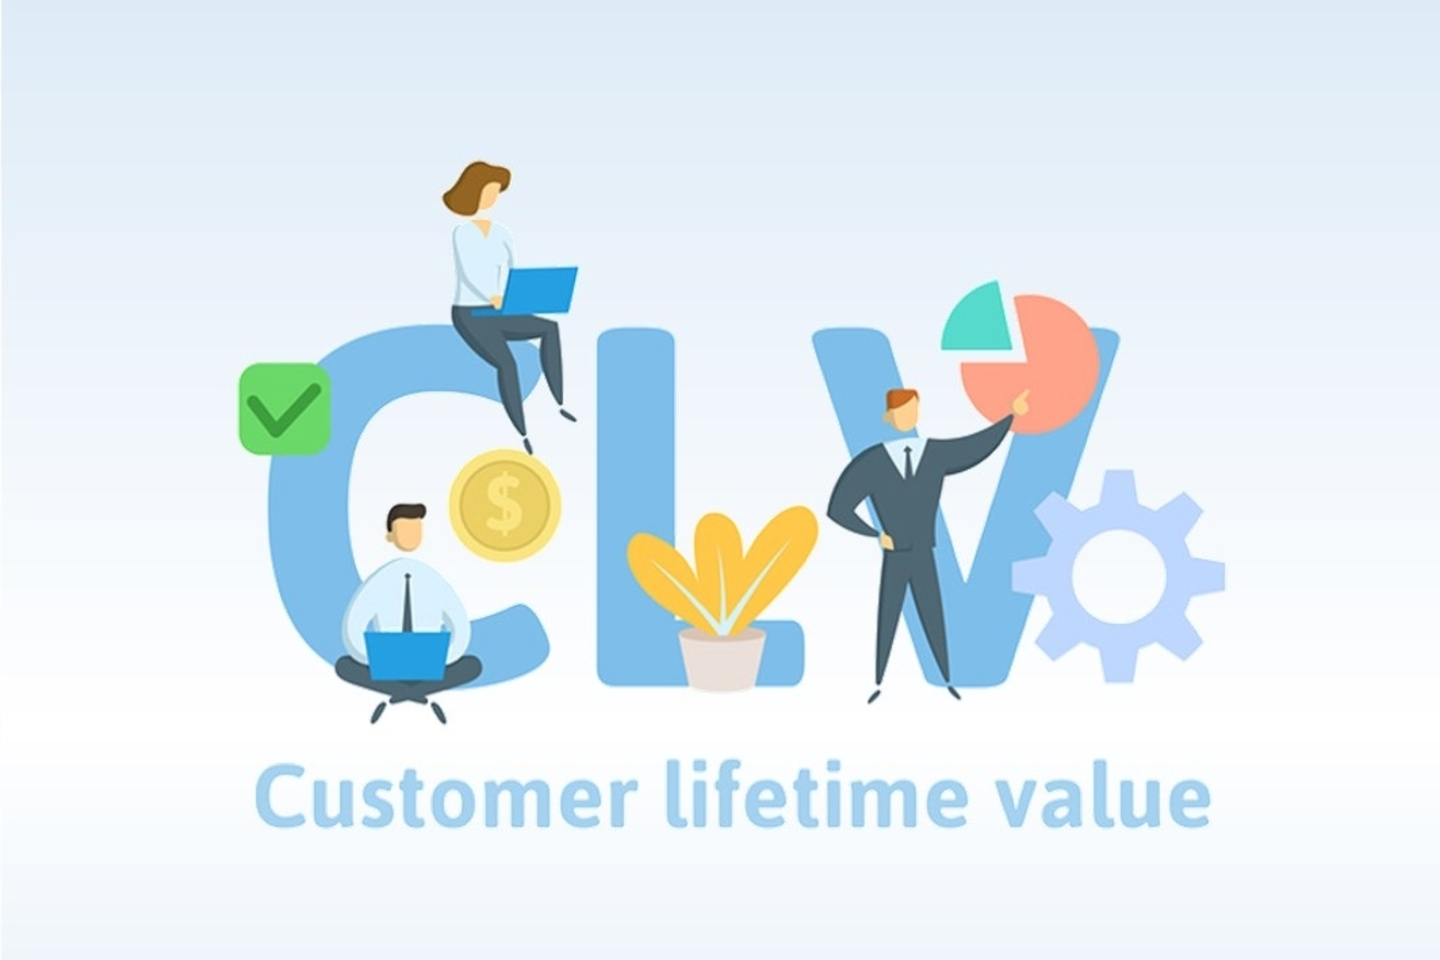 All you need to know about the customer lifetime value calculation